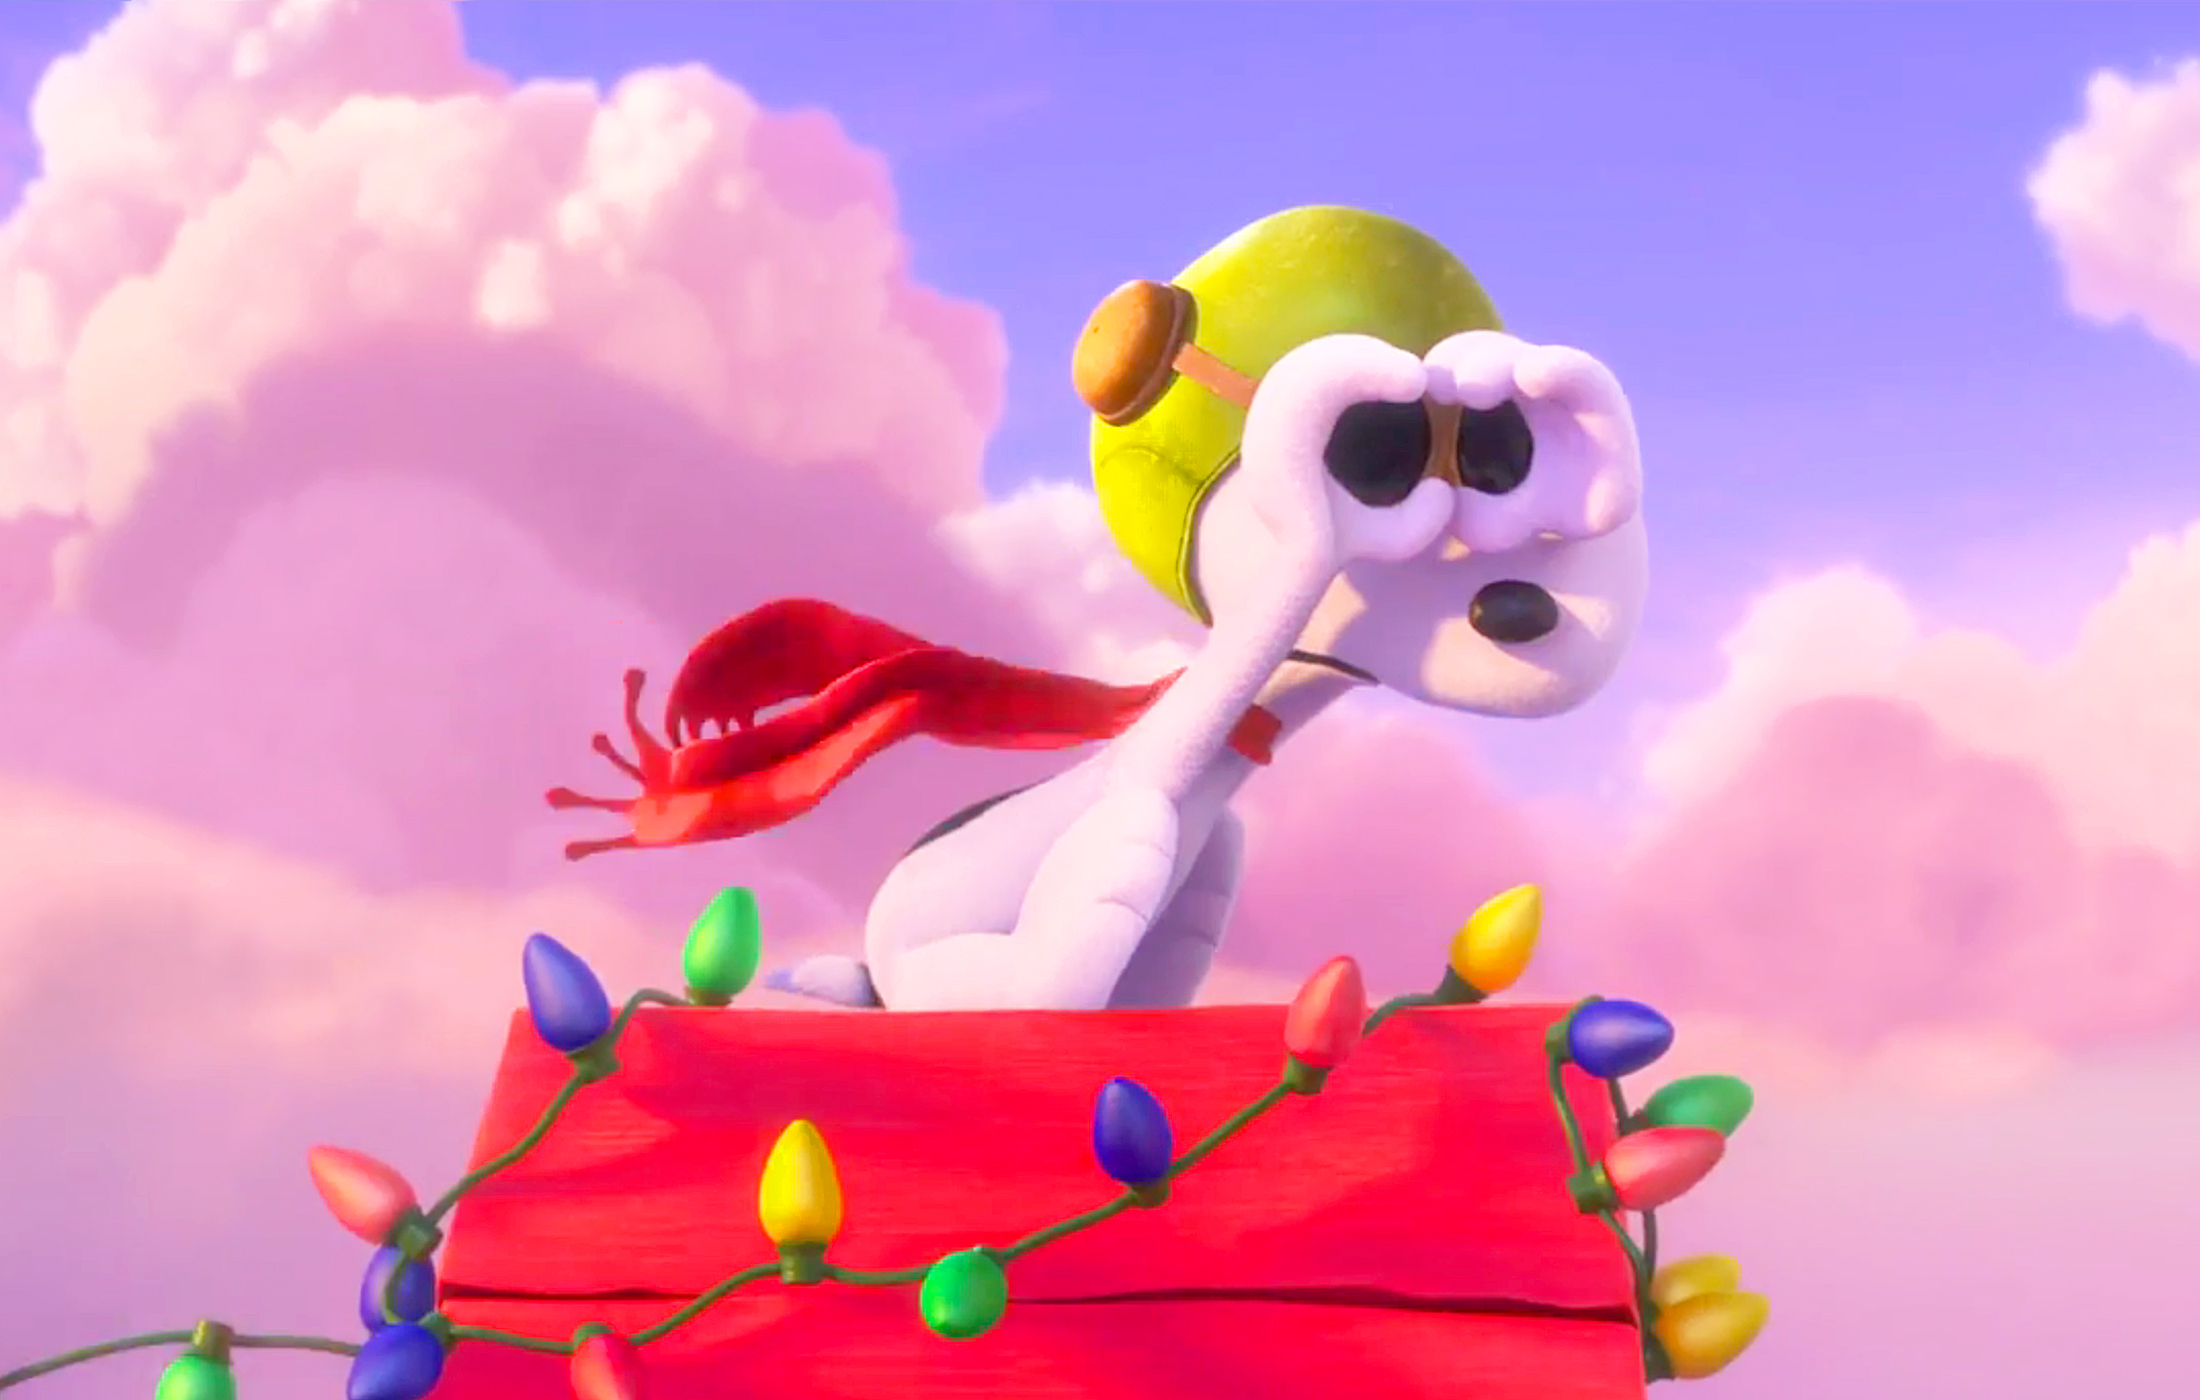 HD Snoopy Wallpapers